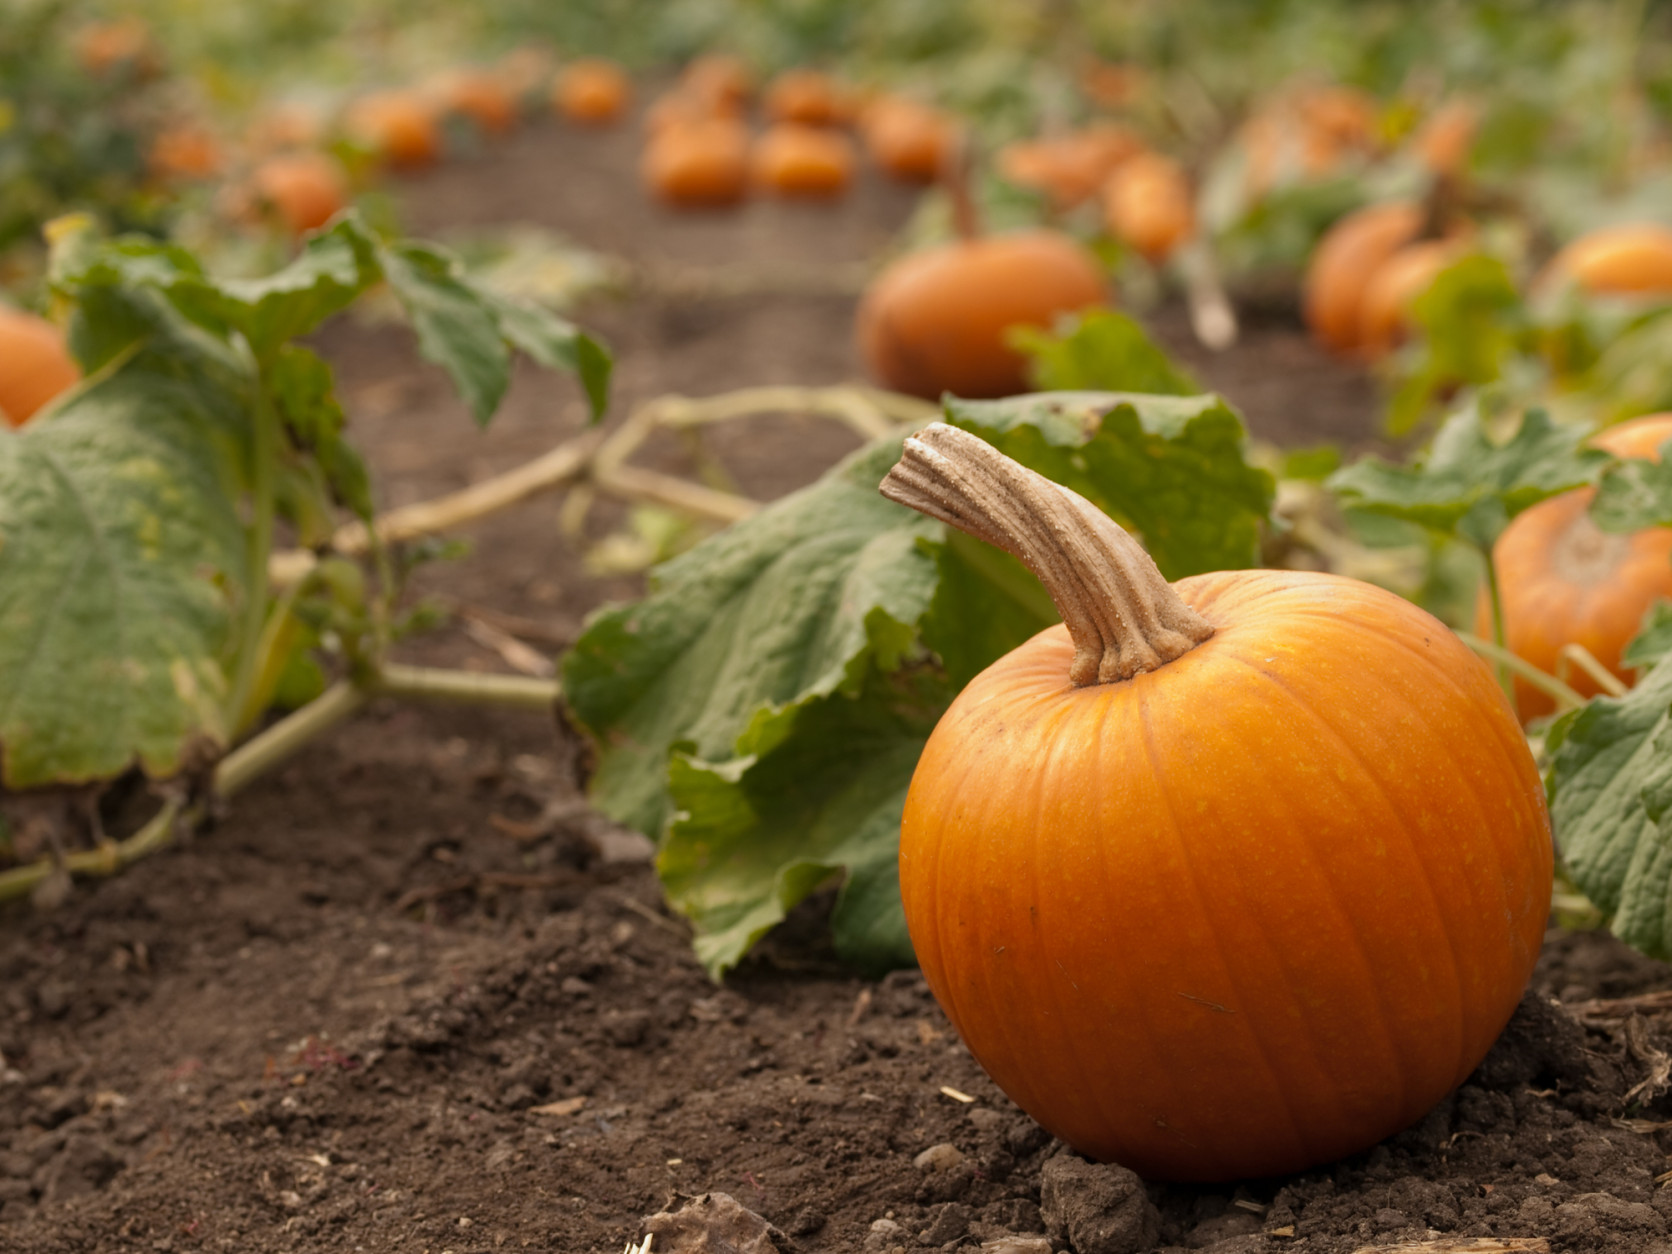 One small orange pumpkin in the foreground in a pumpkin patch